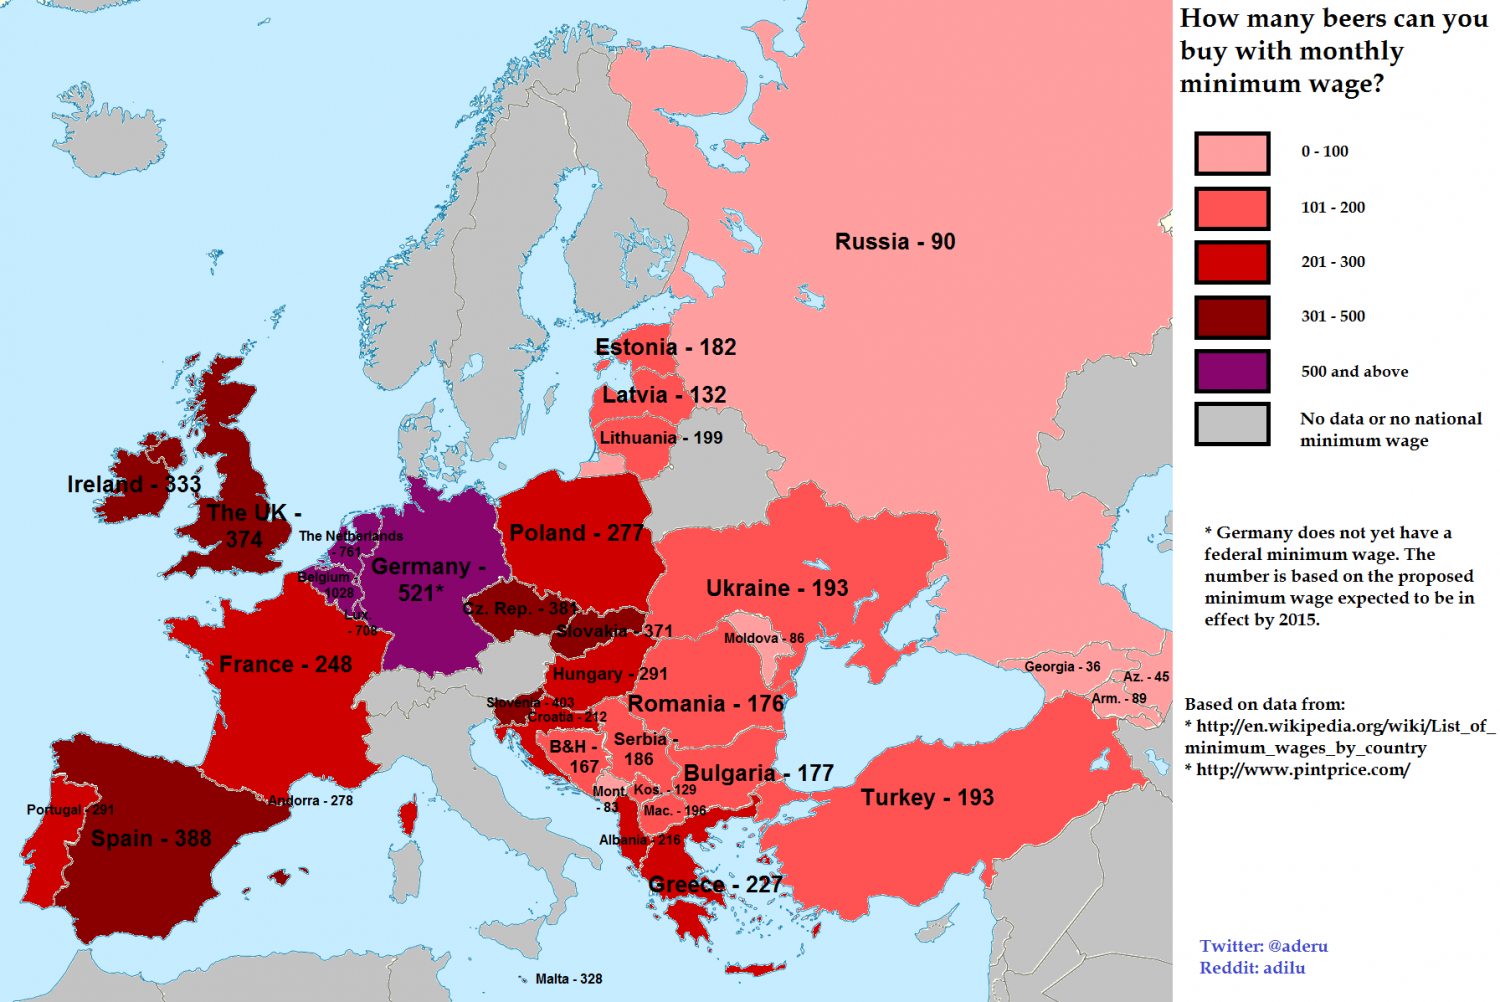 How Many Beers For Minimum Wage in Europe Infographic